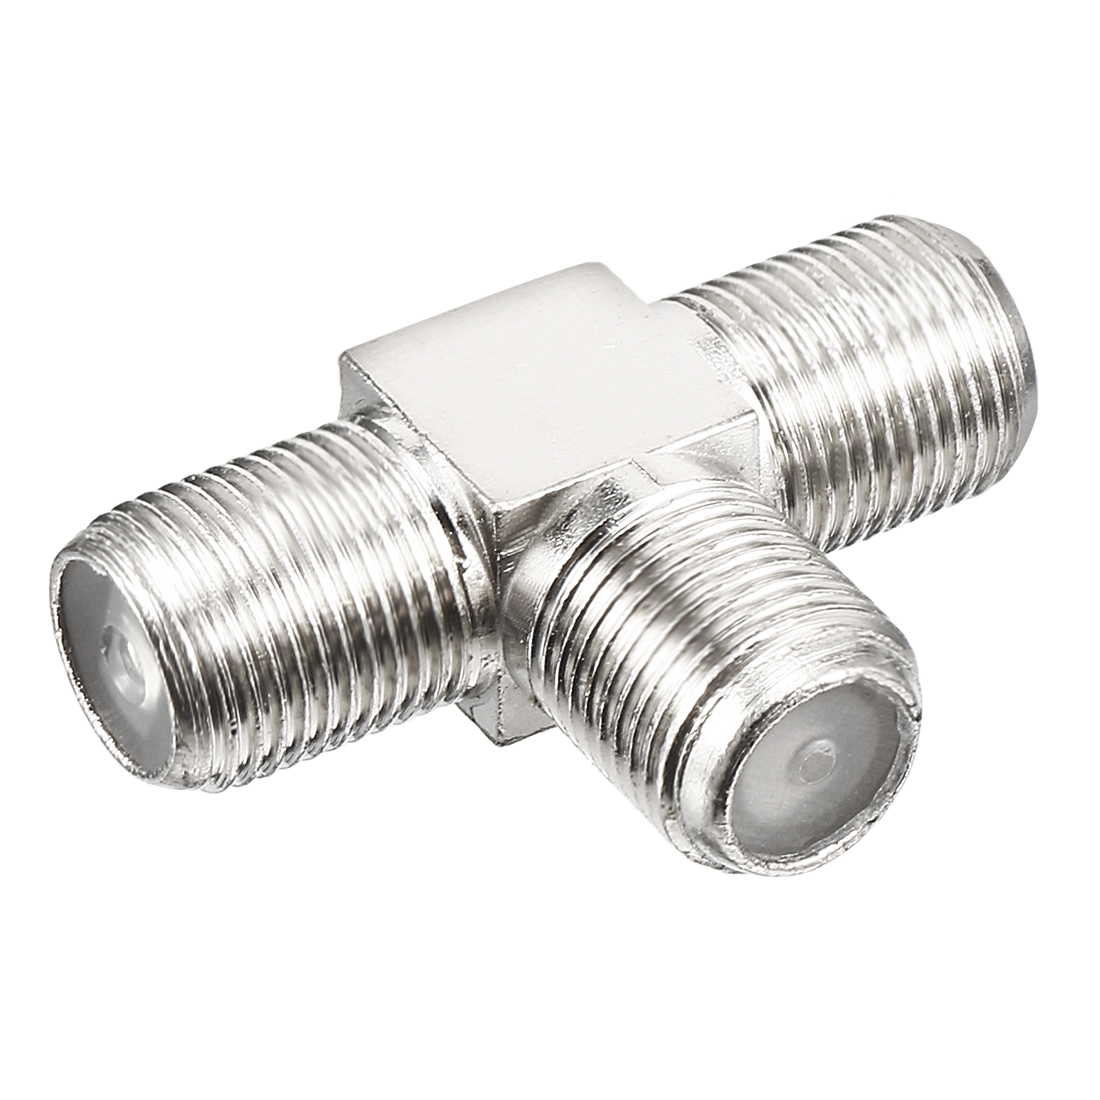 Silver Tone BSP 3 Ways F Female Jack RF Coaxial Adapter Connector